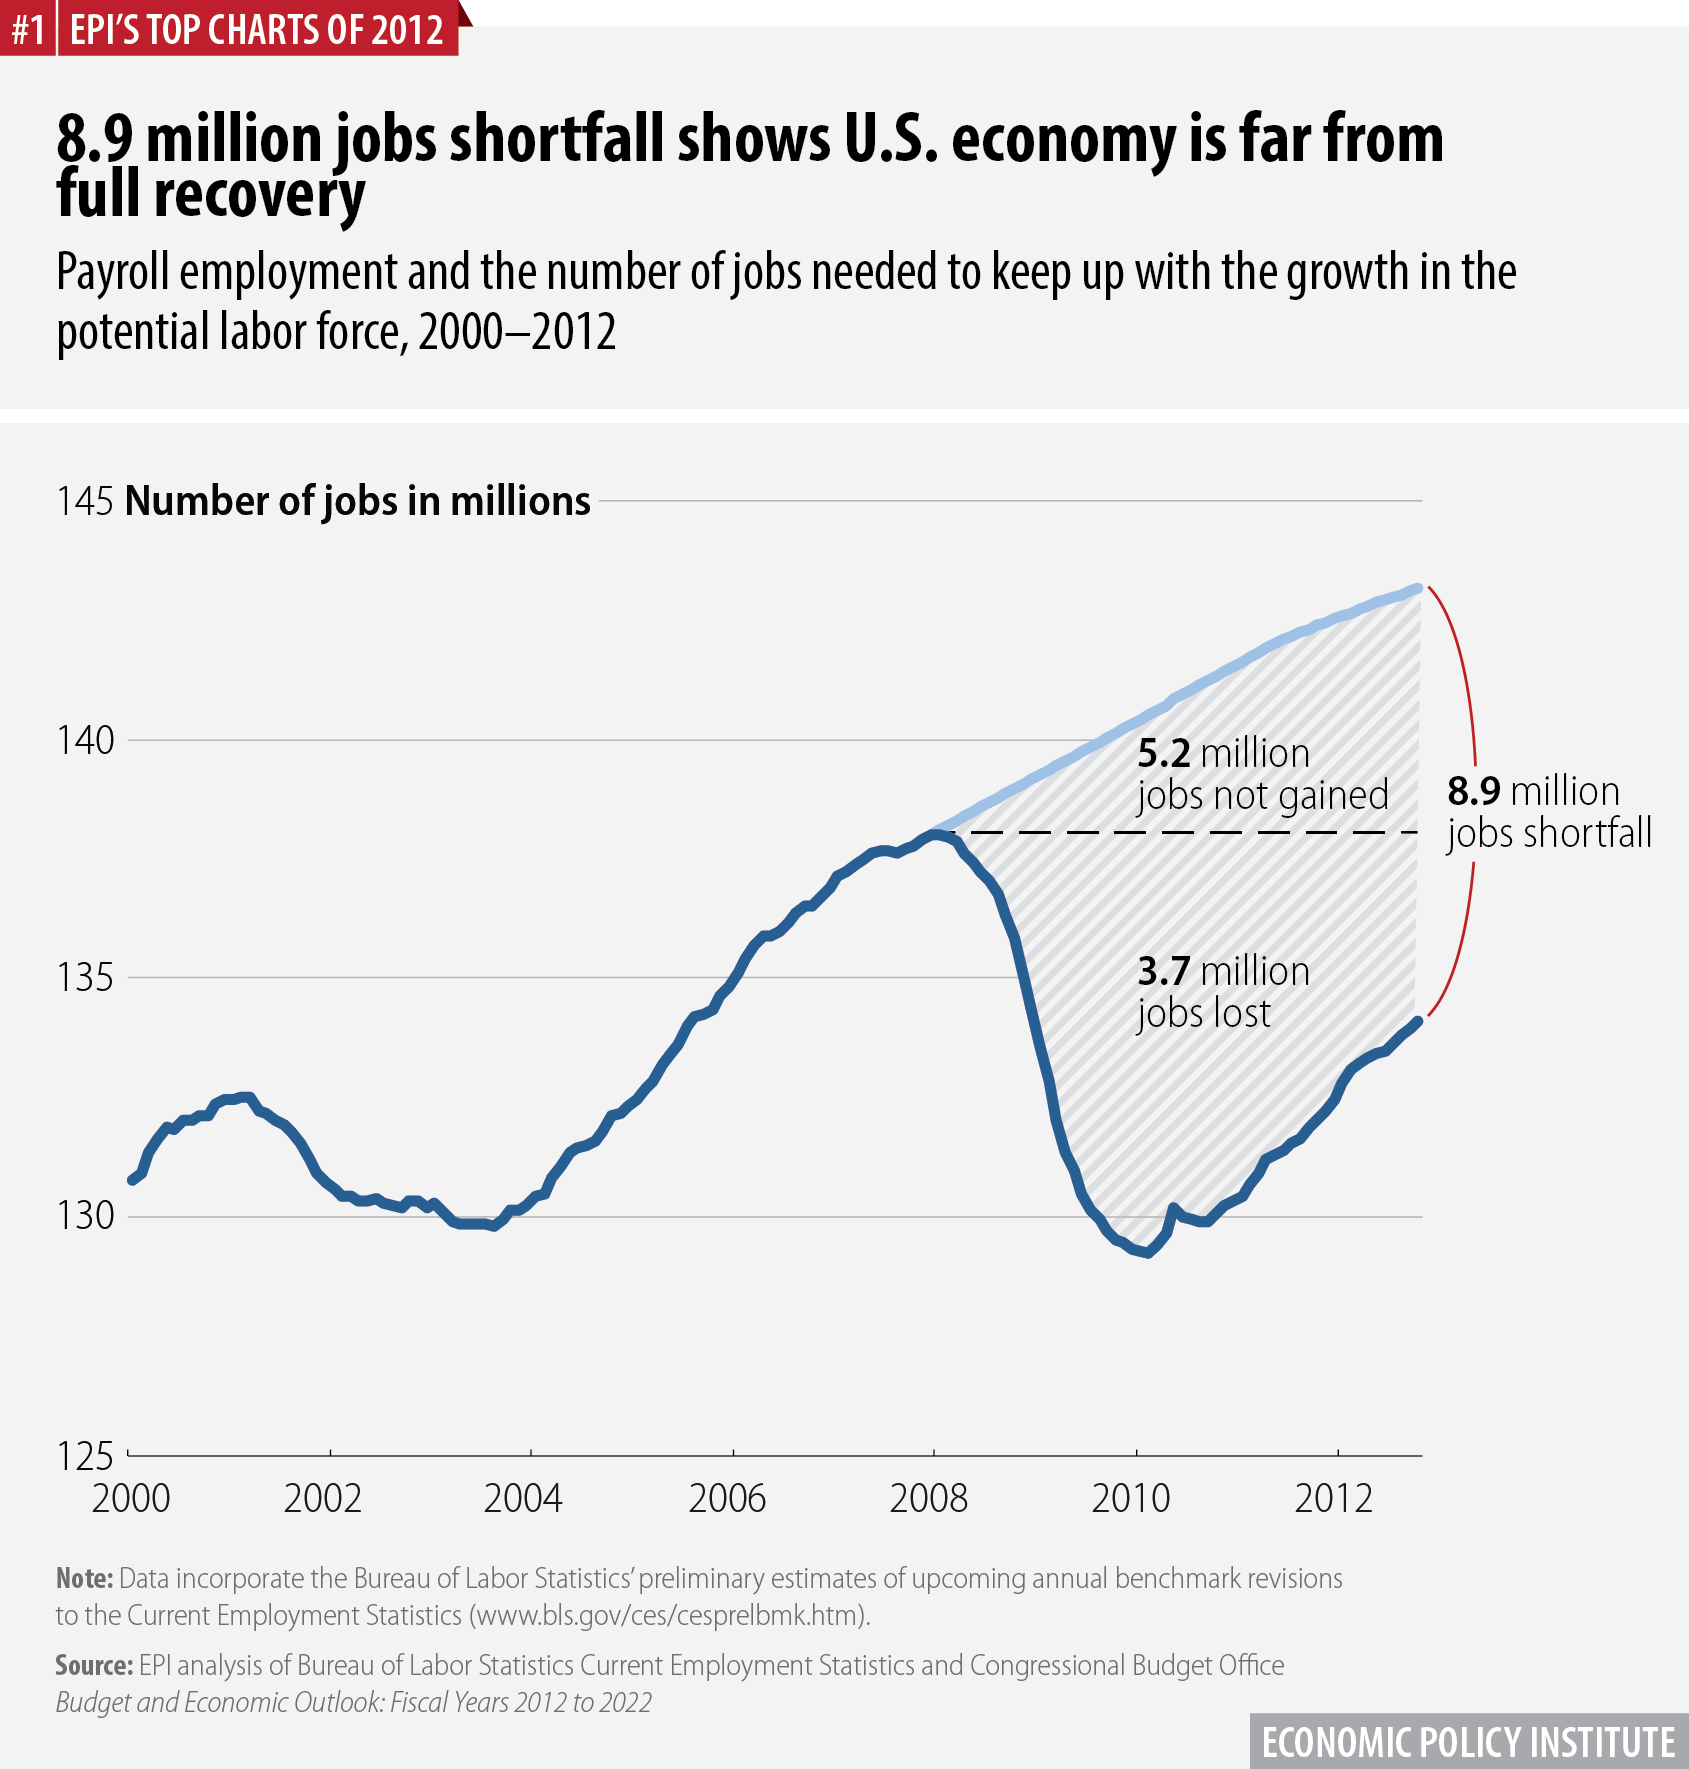 8.9 million jobs shortfall shows U.S. economy is far from full recovery | Payroll employment and the number of jobs needed to keep up with the growth in the potential labor force, 2000–2012